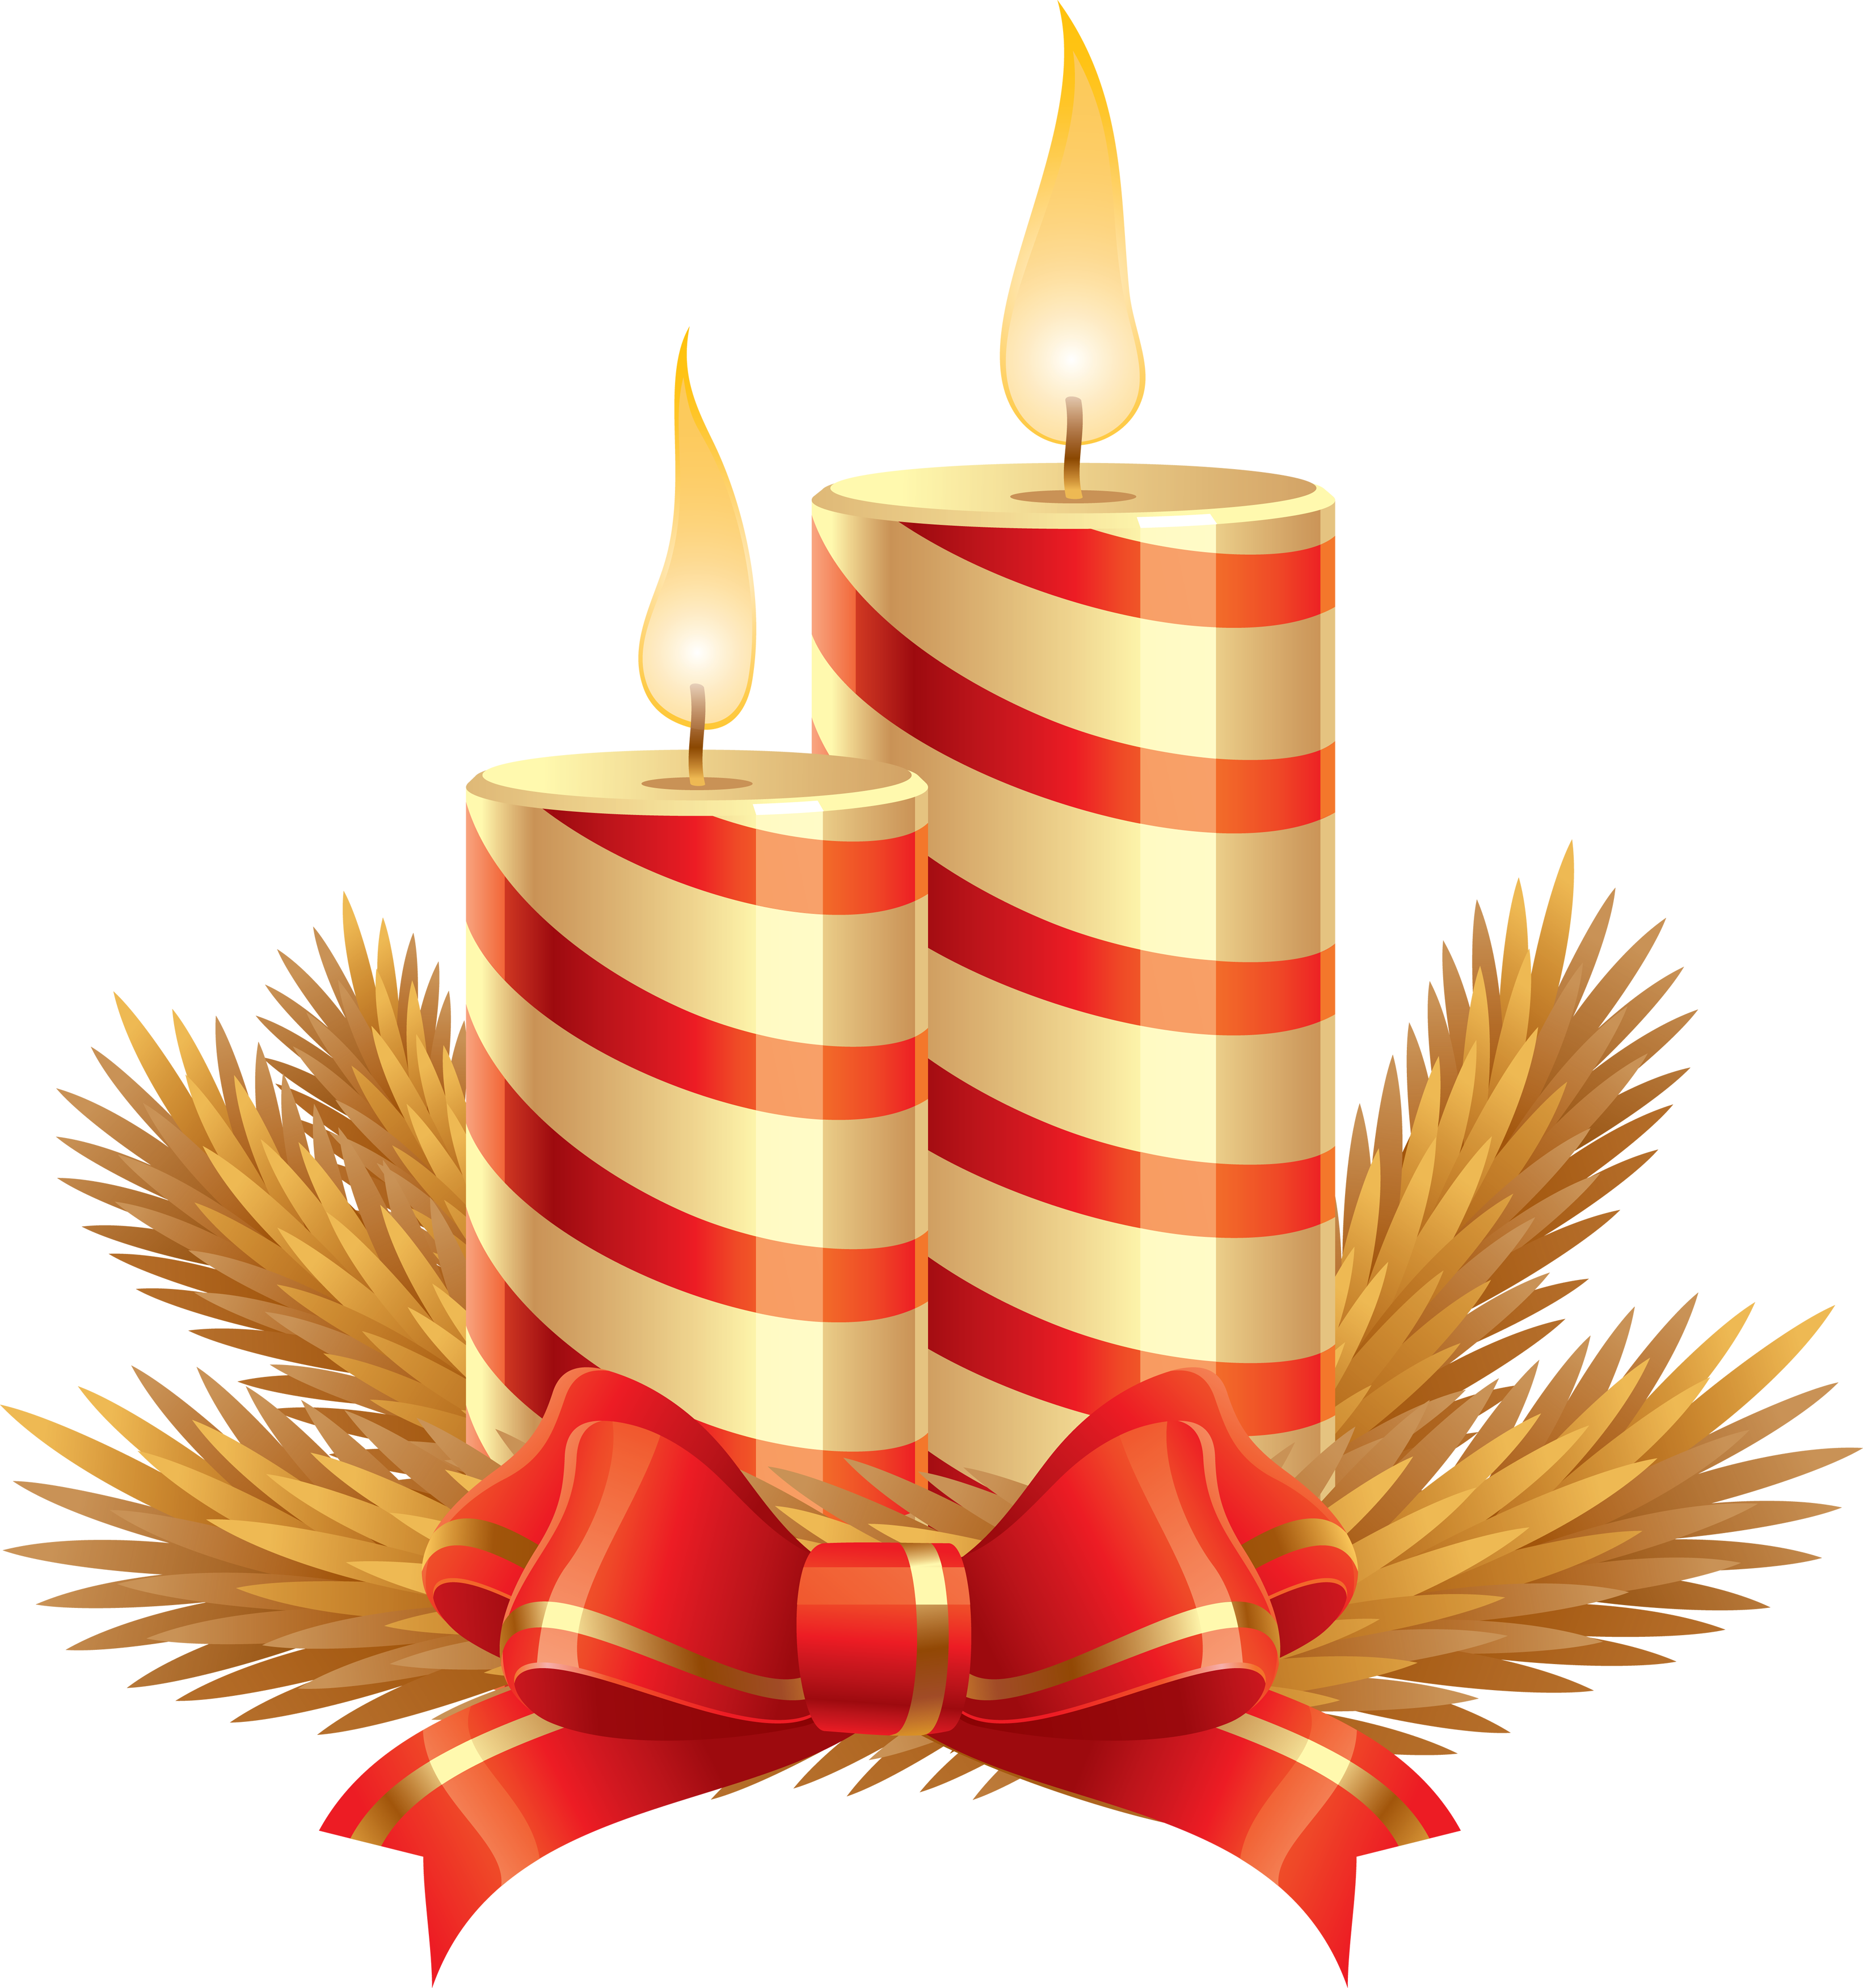 Christmas Candle PNG Image - Candles PNG - Candle HD PNG - Burning Candle PNG HD